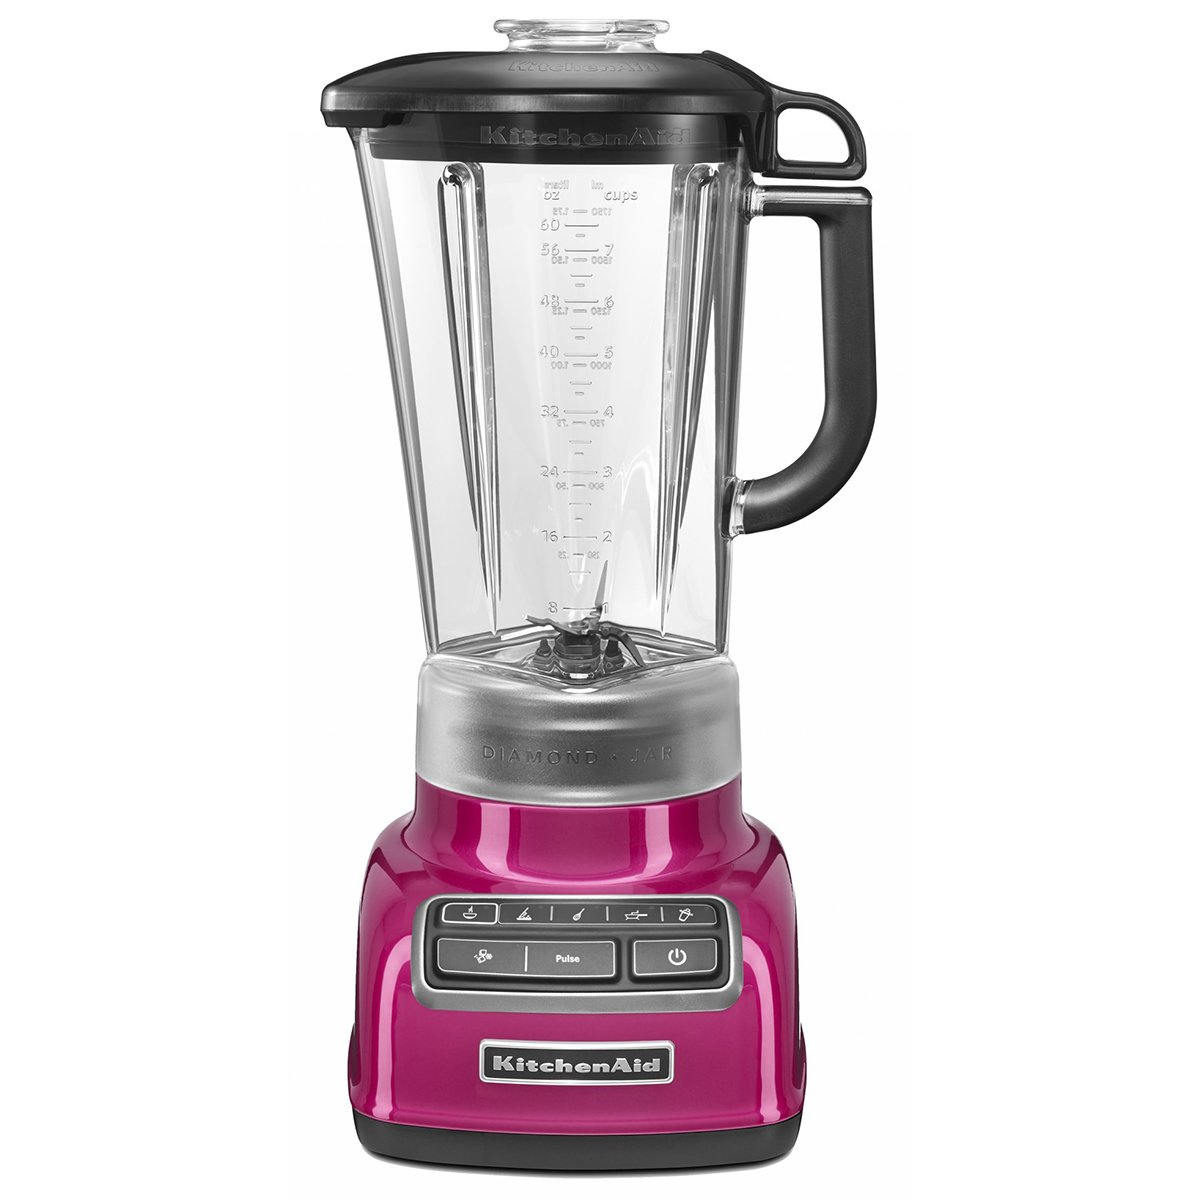 details about new kitchenaid 5ksb1586ari blenders